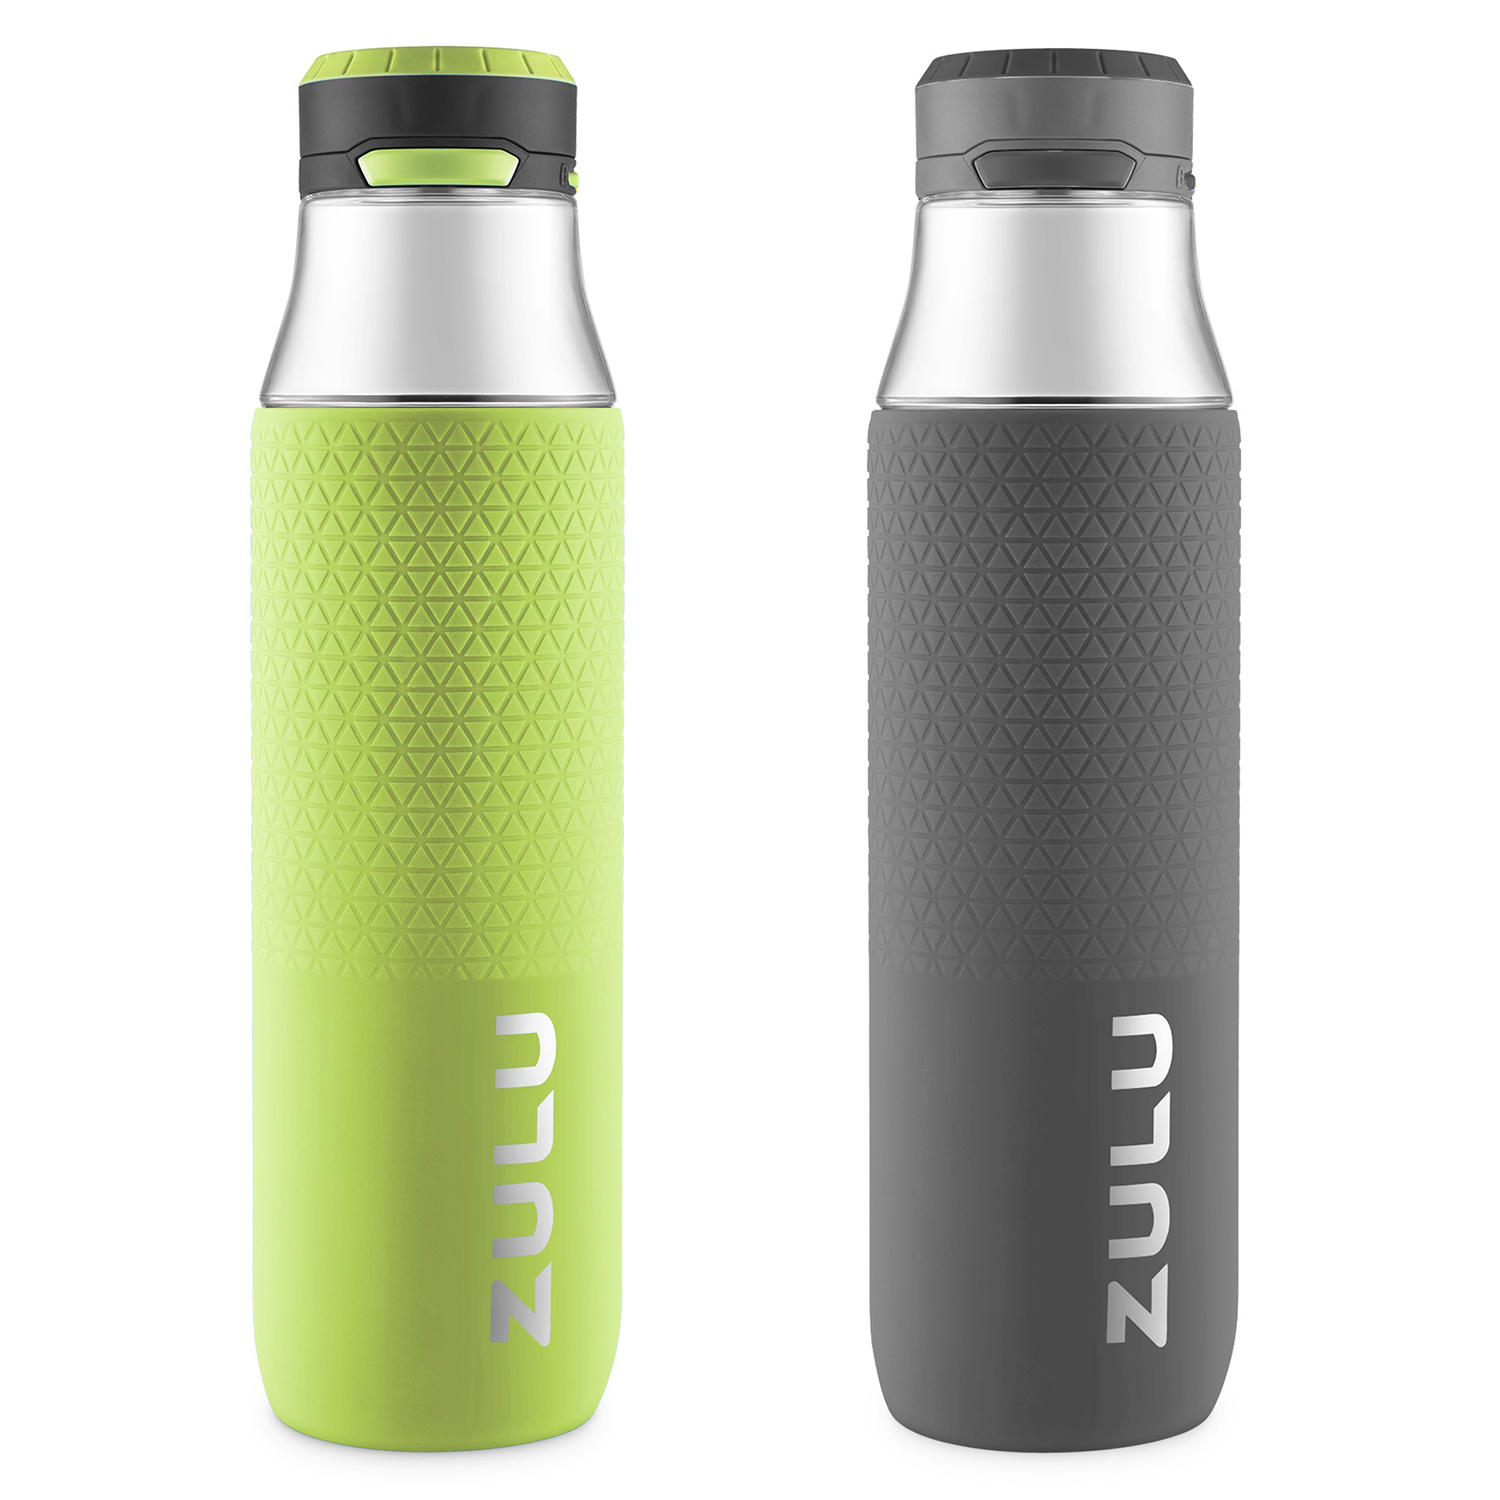 2-Pack Zulu 32 oz. Studio Chug Tritan Water Bottles (Assorted Colors)